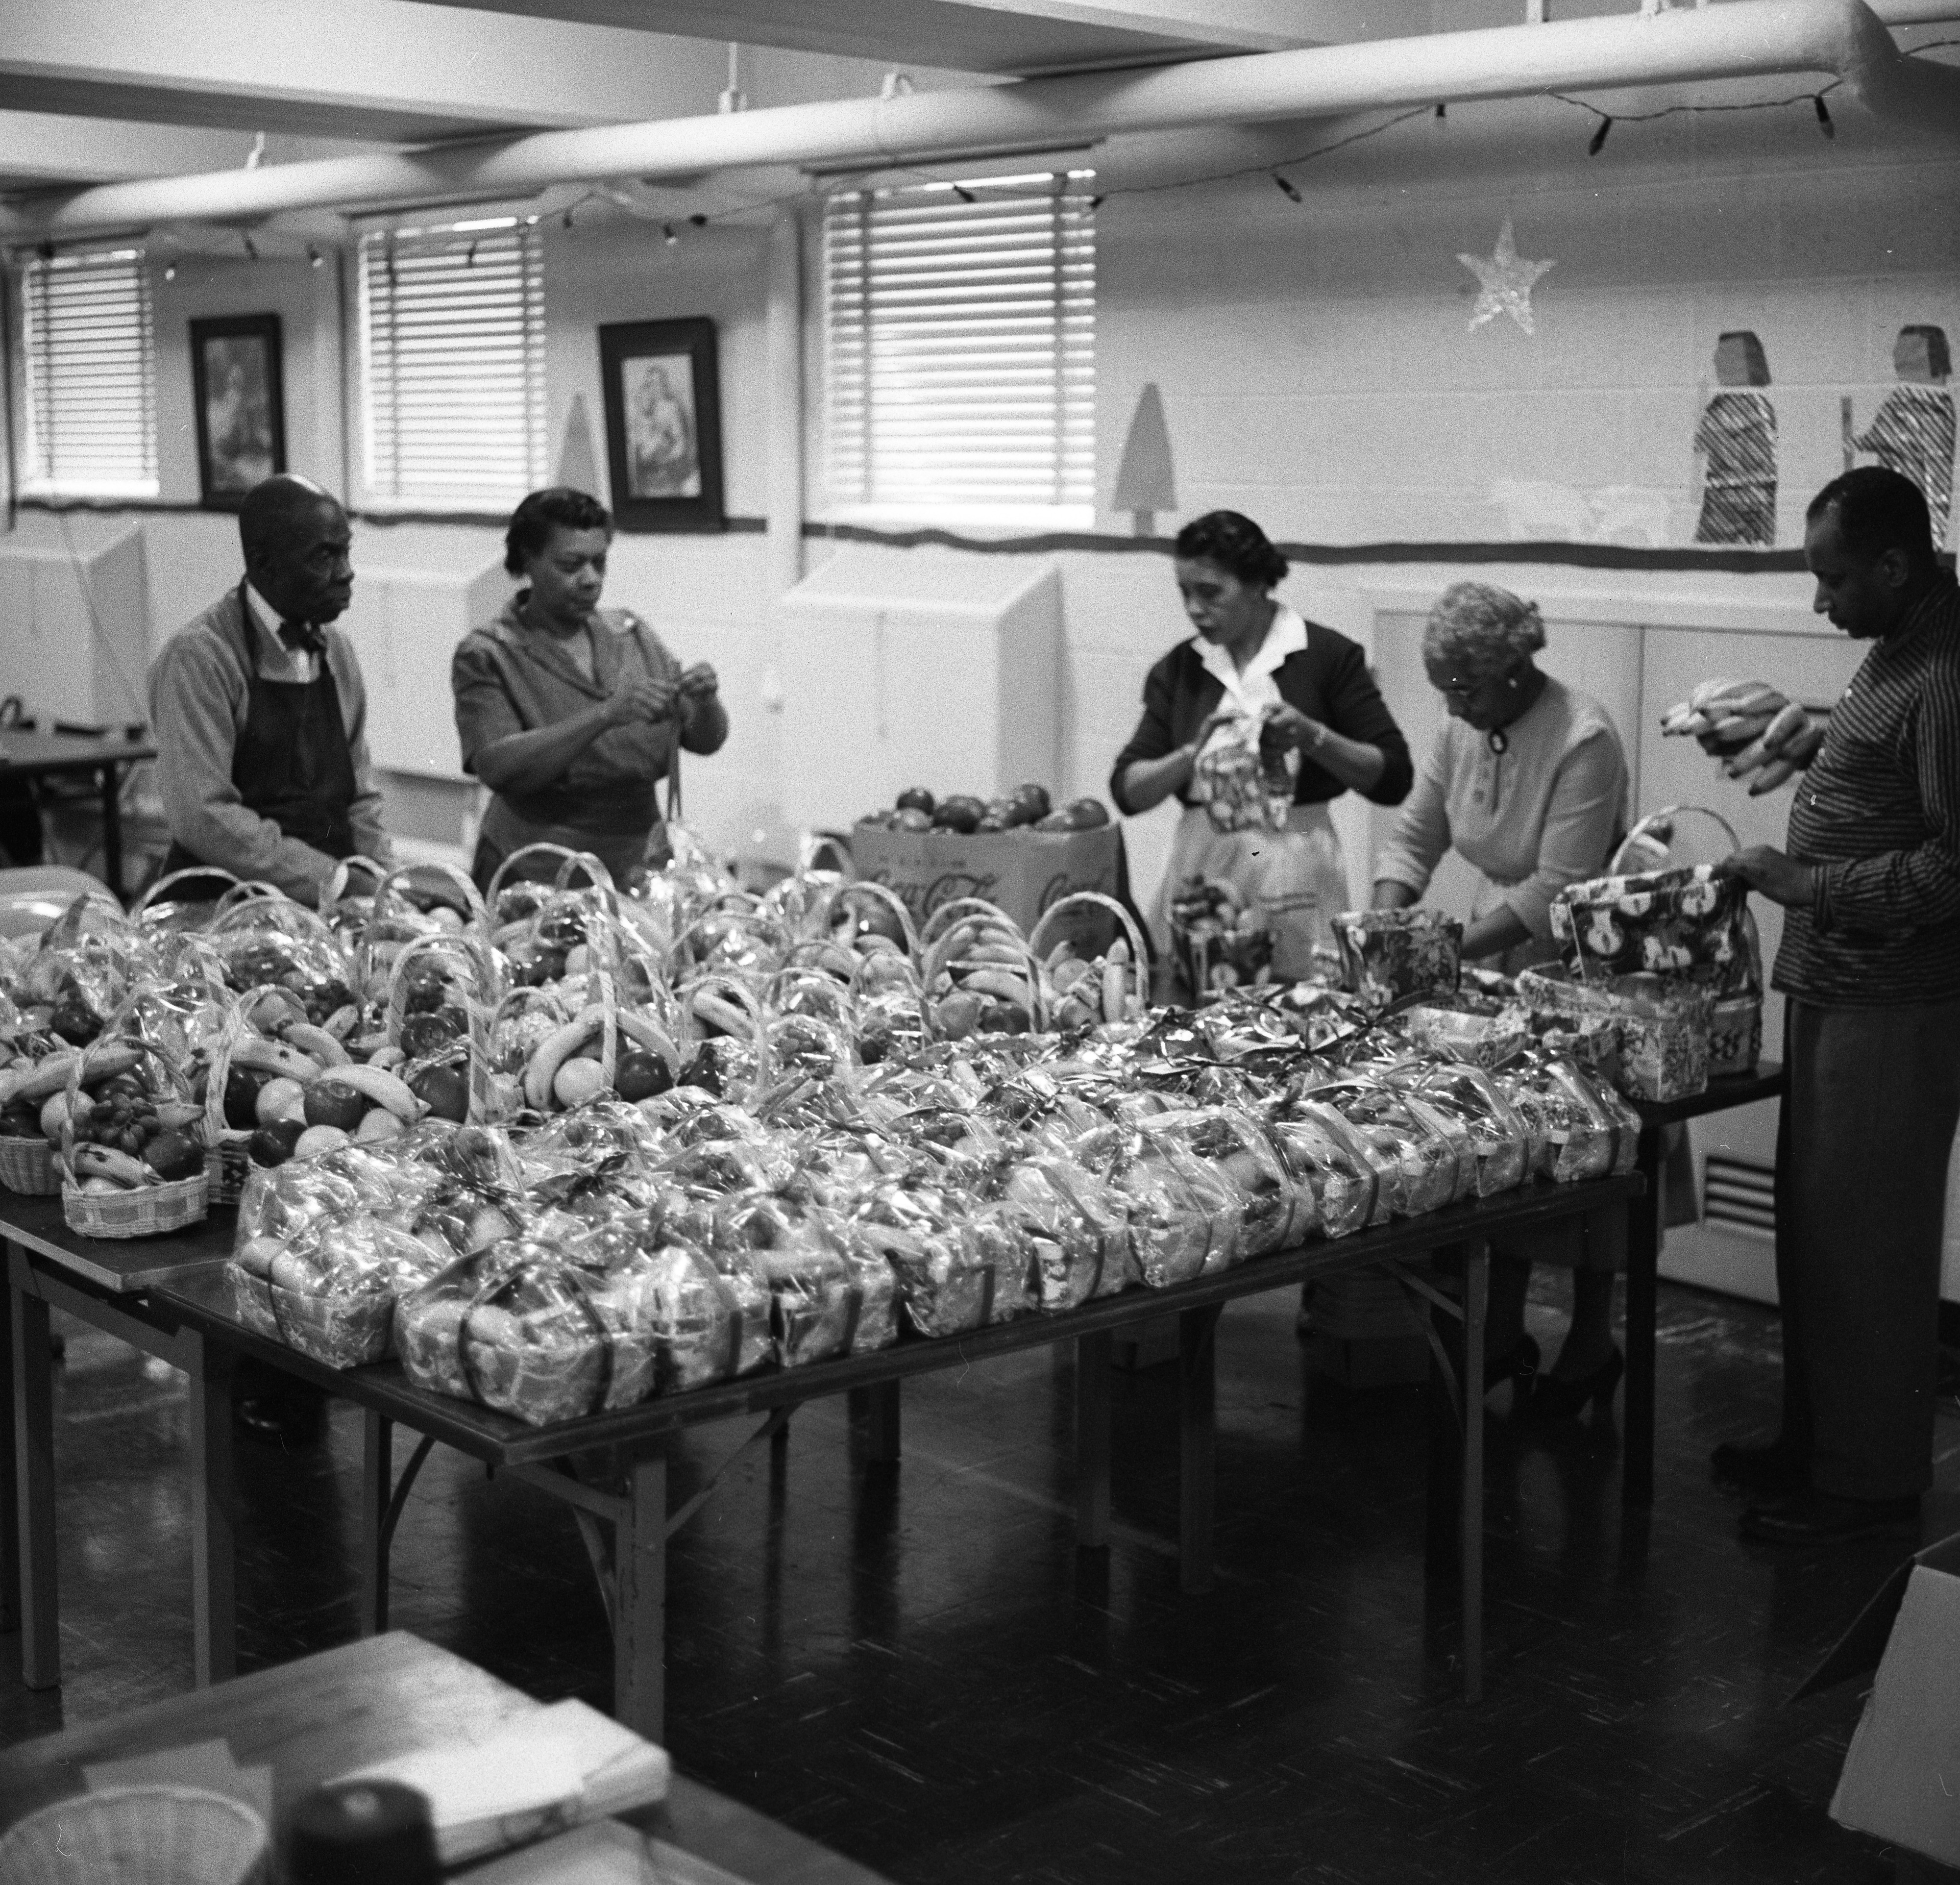 Filling Holiday Fruit Baskets at Second Baptist Church, December 1957 image